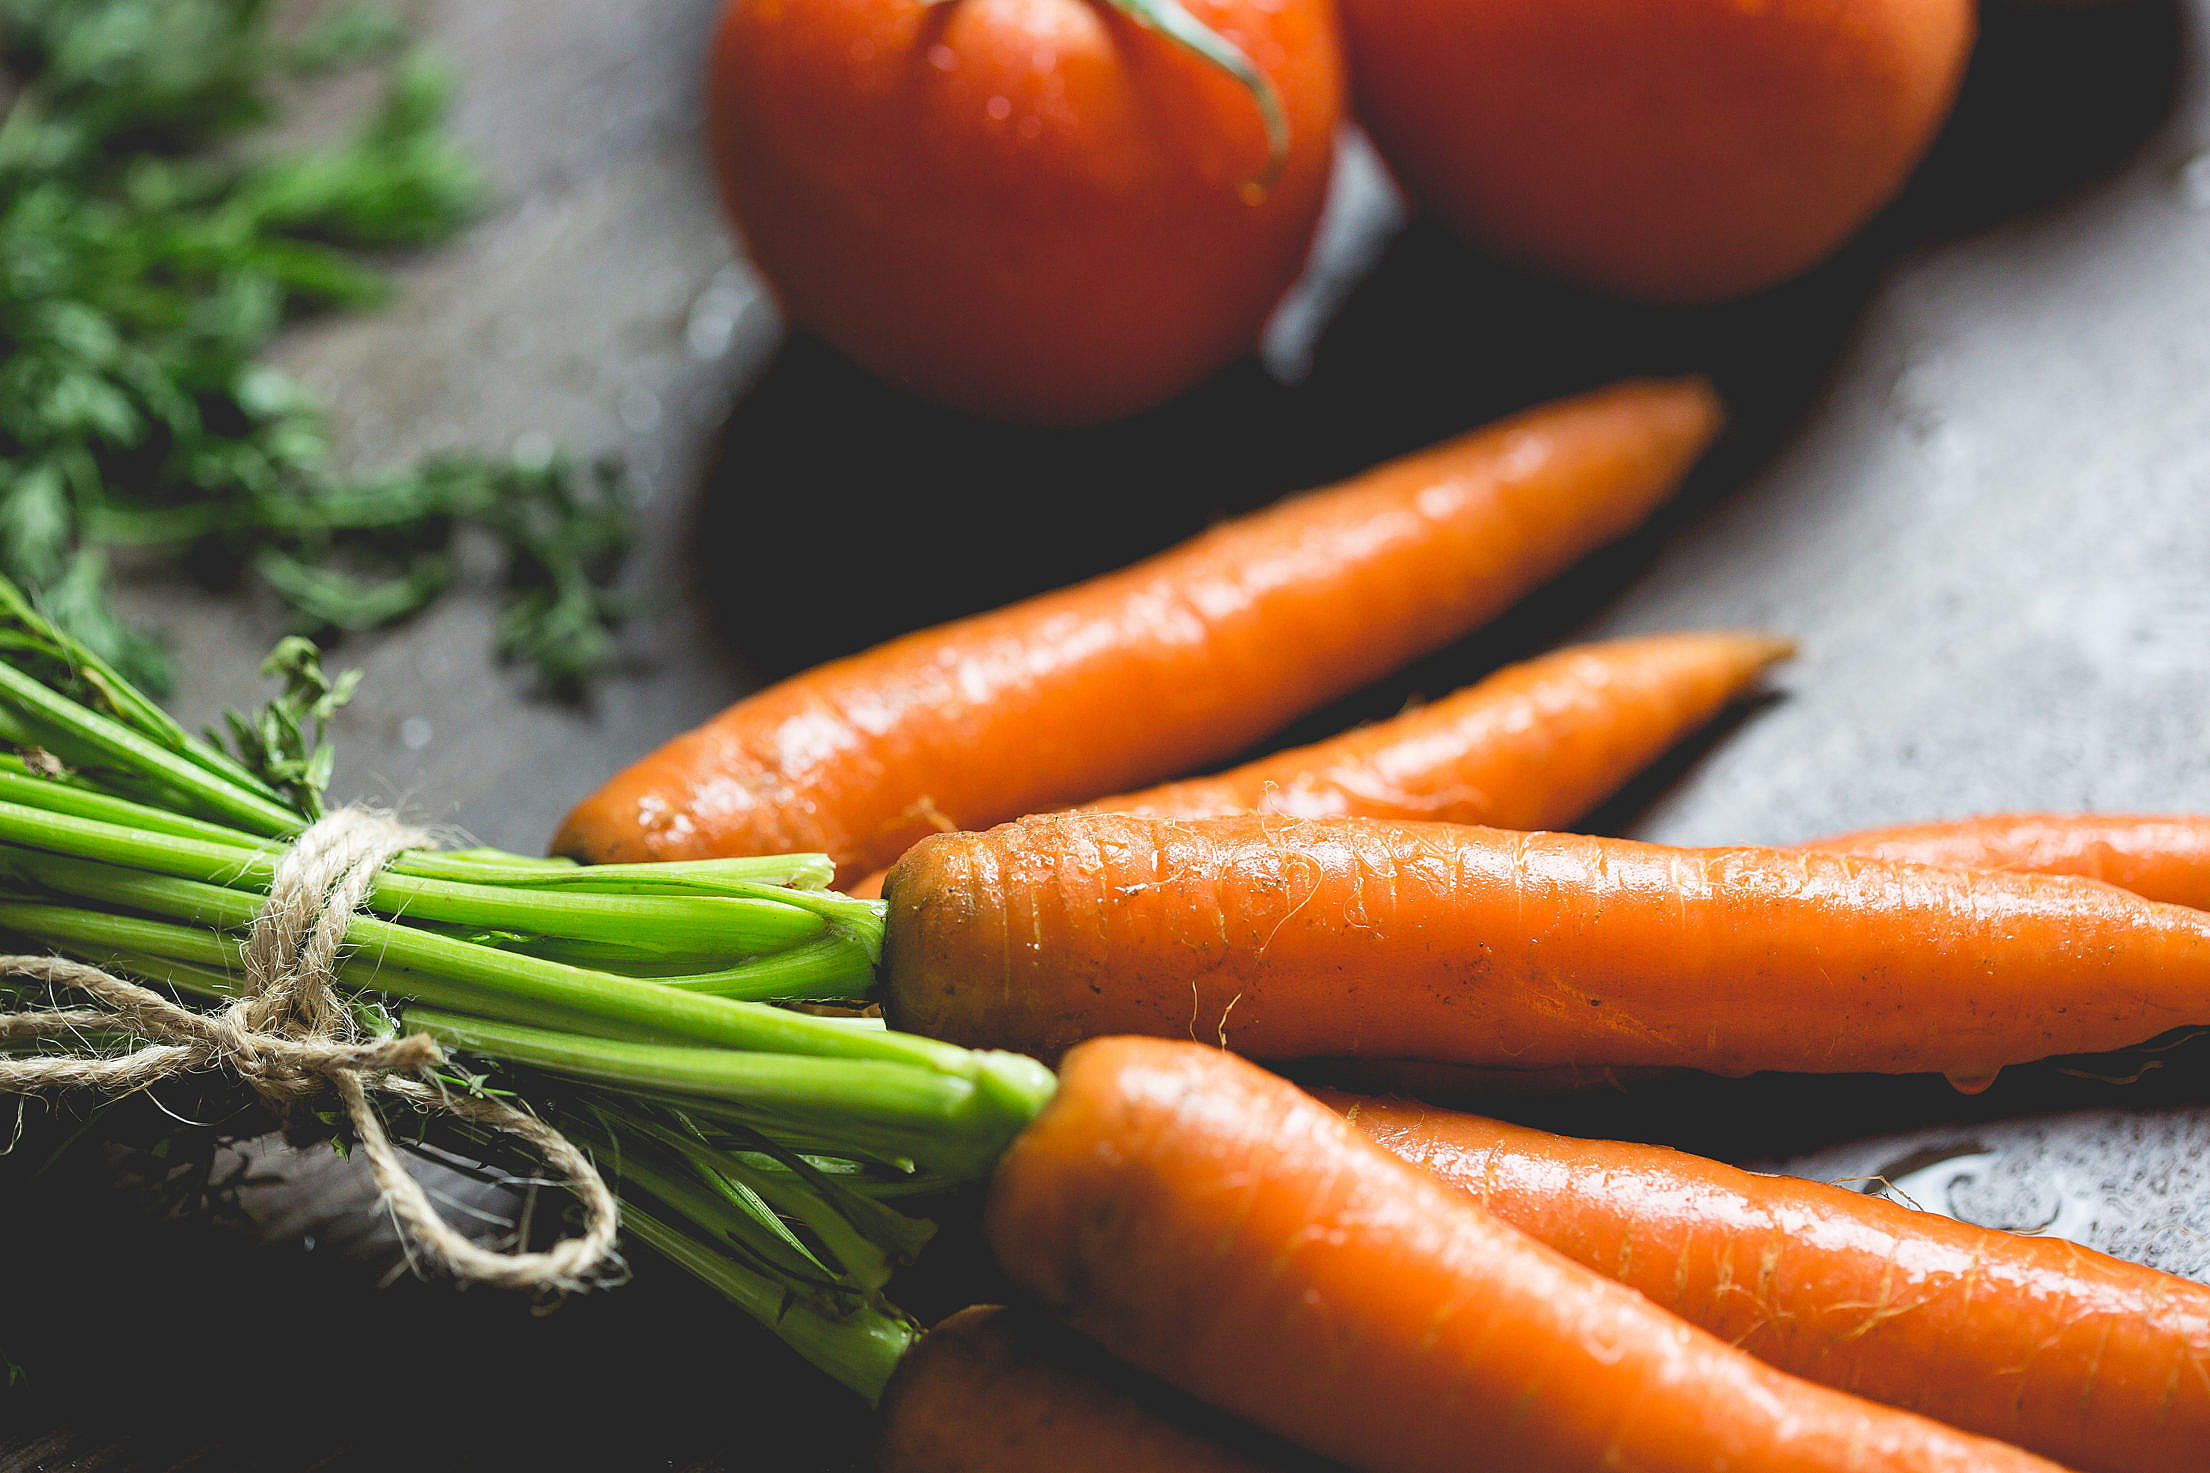 Carrots Close Up Free Stock Photo